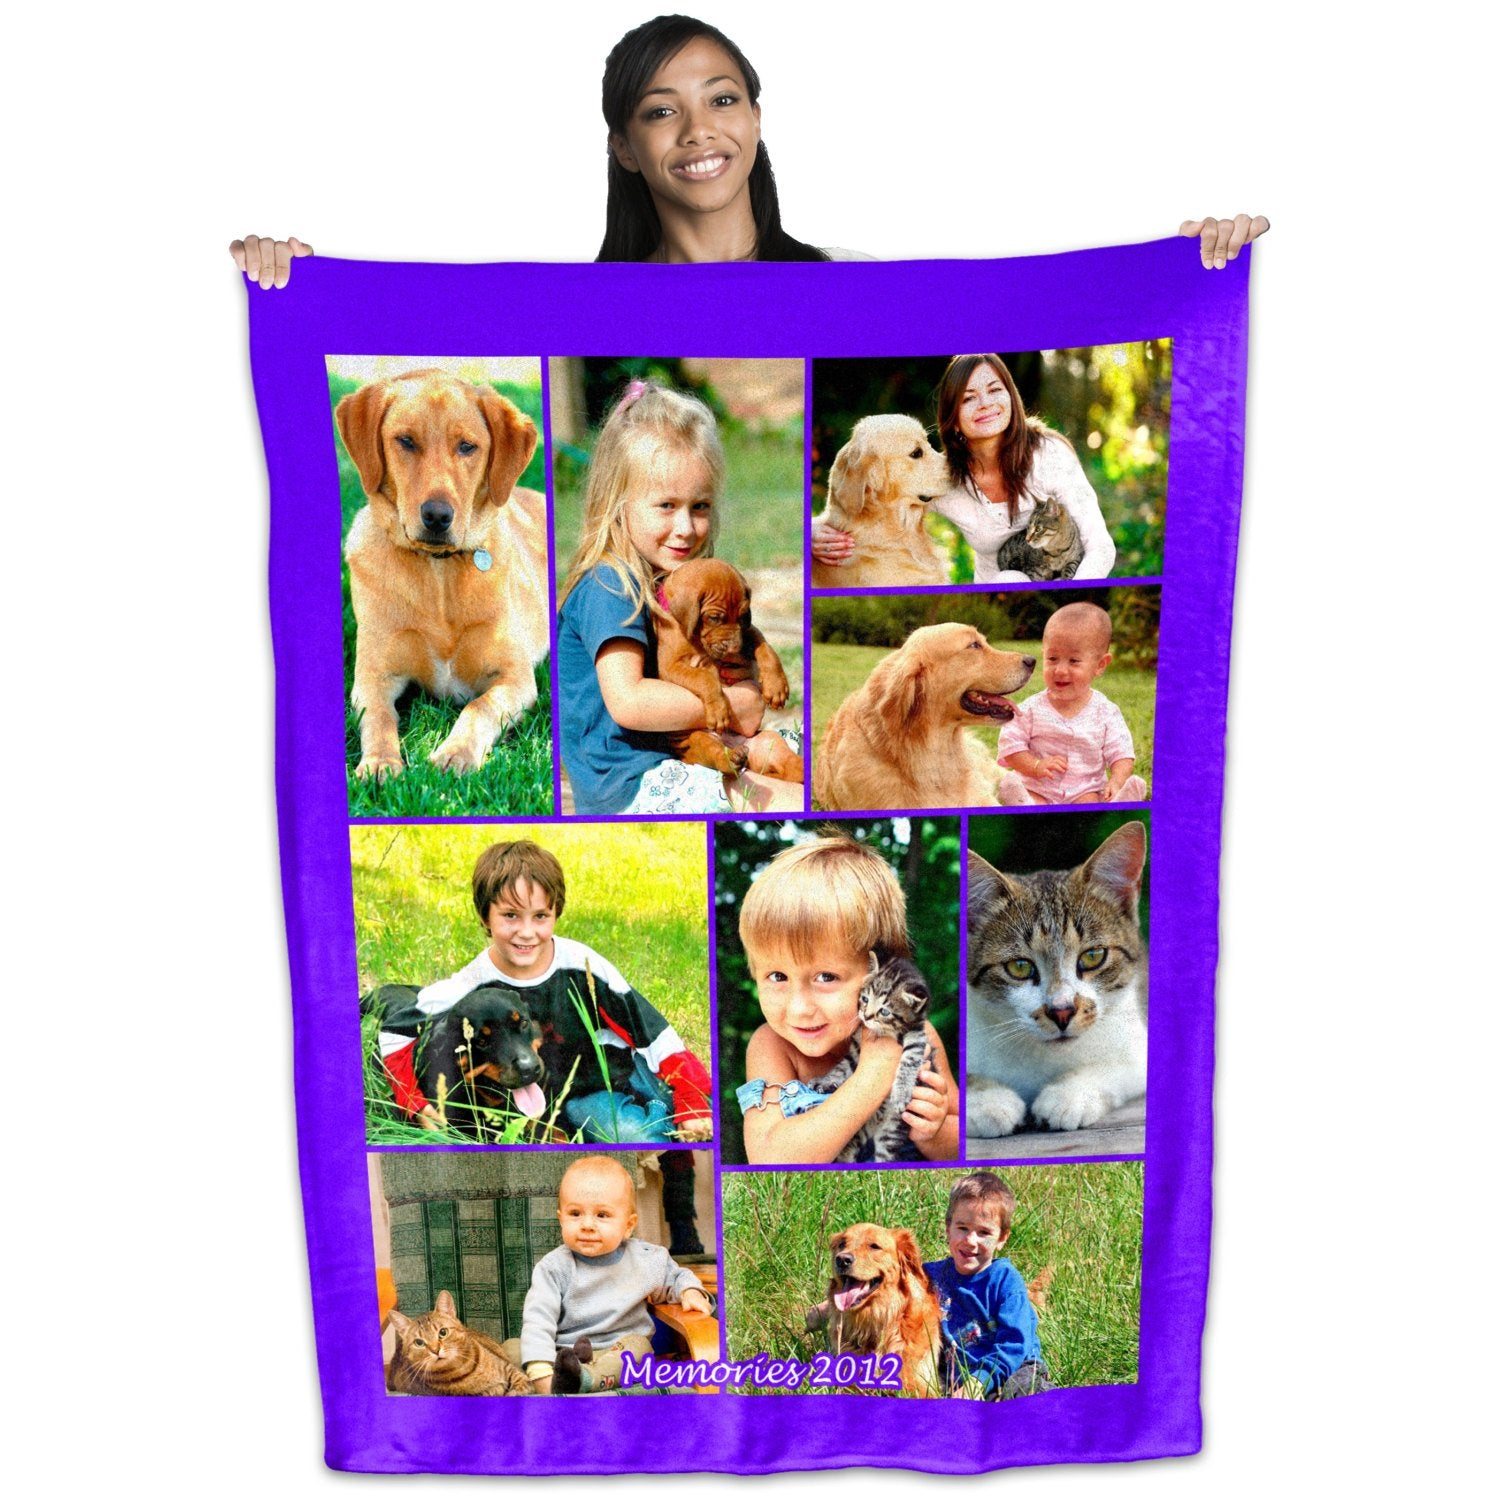 Personalized Coral Plush Fleece Photo Collage Blanket